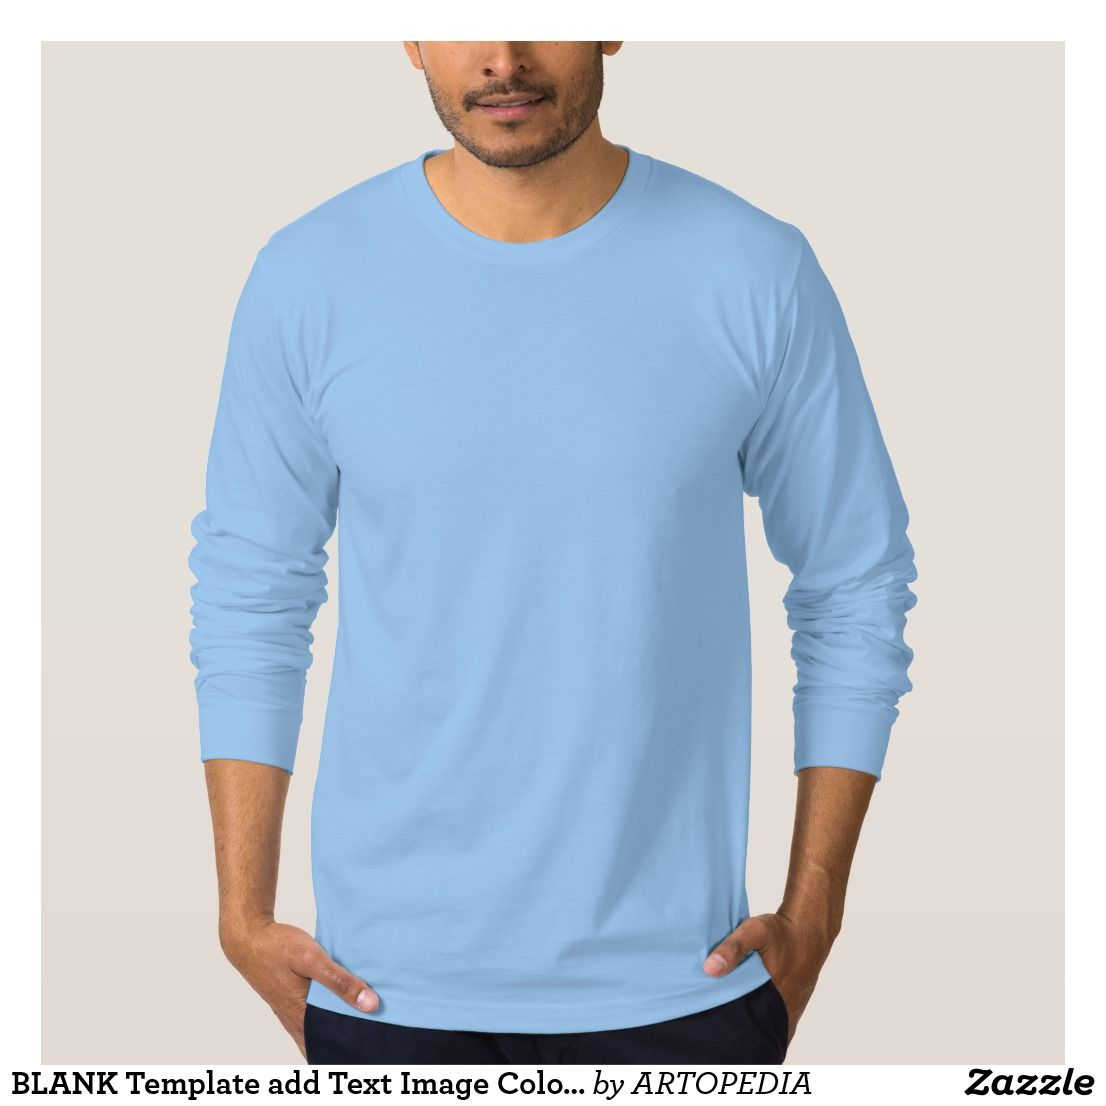 Blank Template Add Text Image Color Made In Usa 07 T Shirt 1